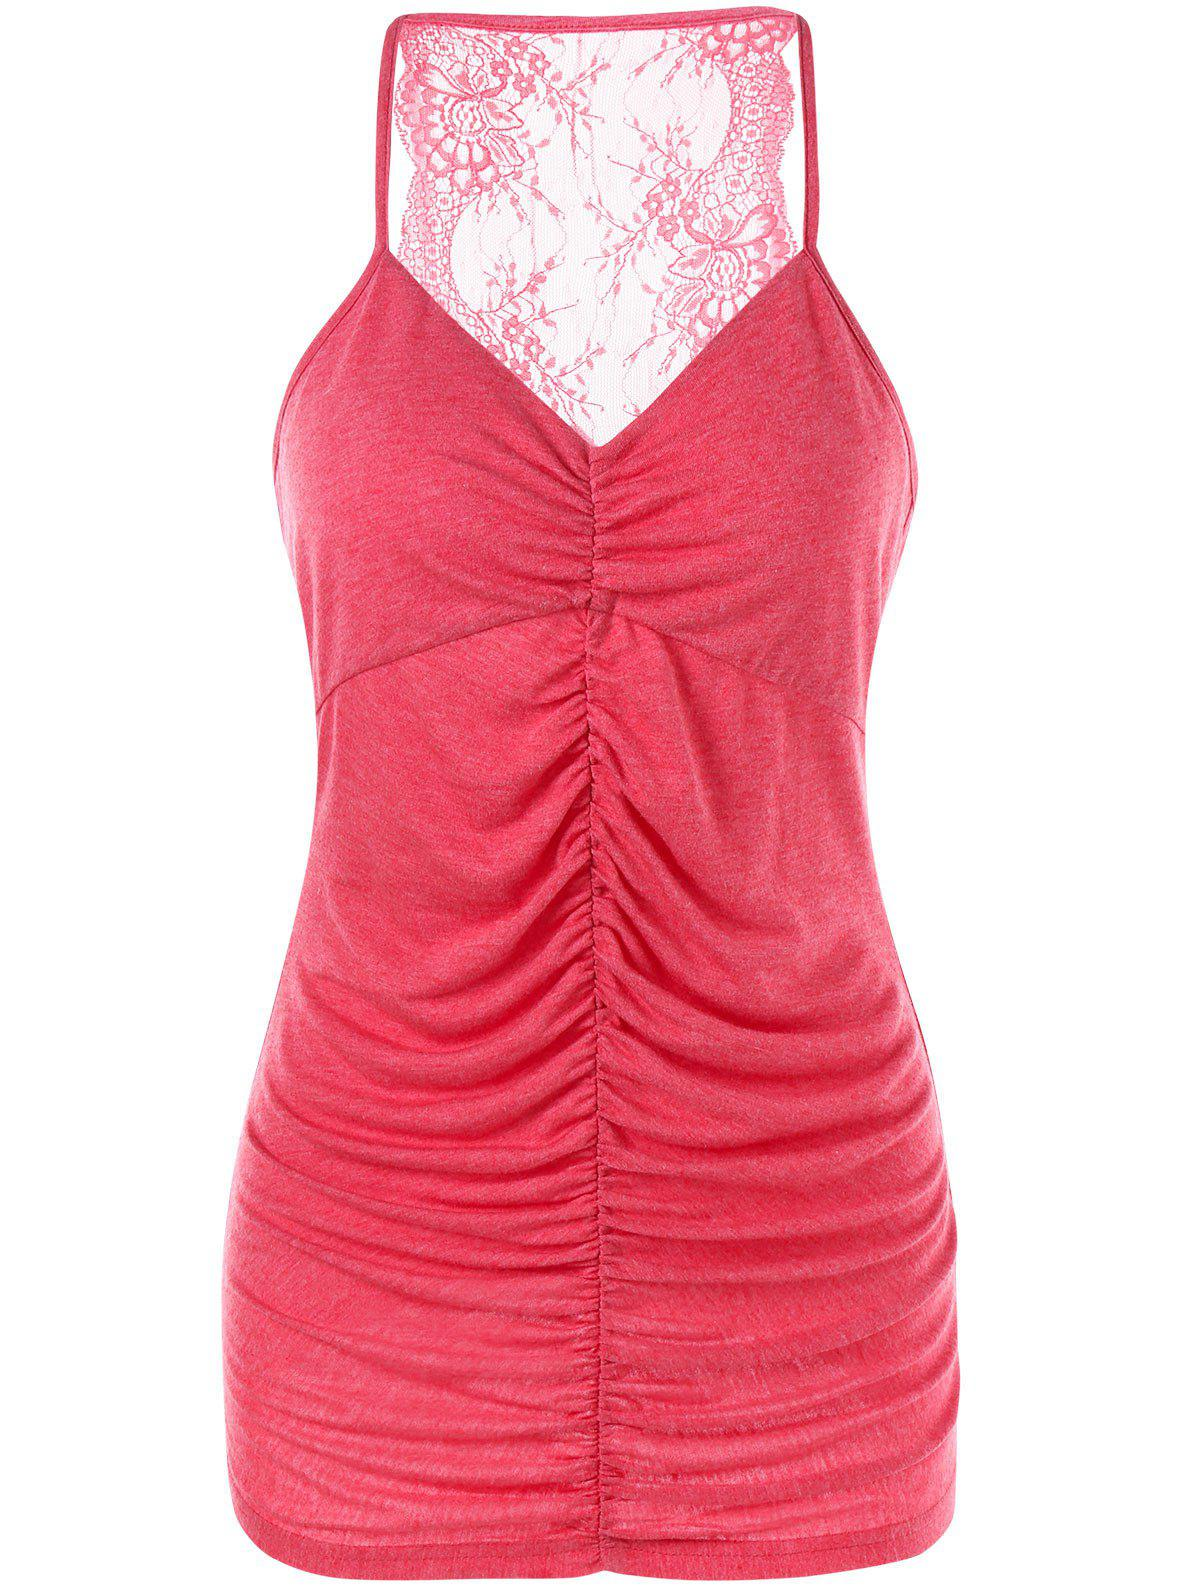 Lace Trim Empire Waist Ruched Tank Top - RED XL